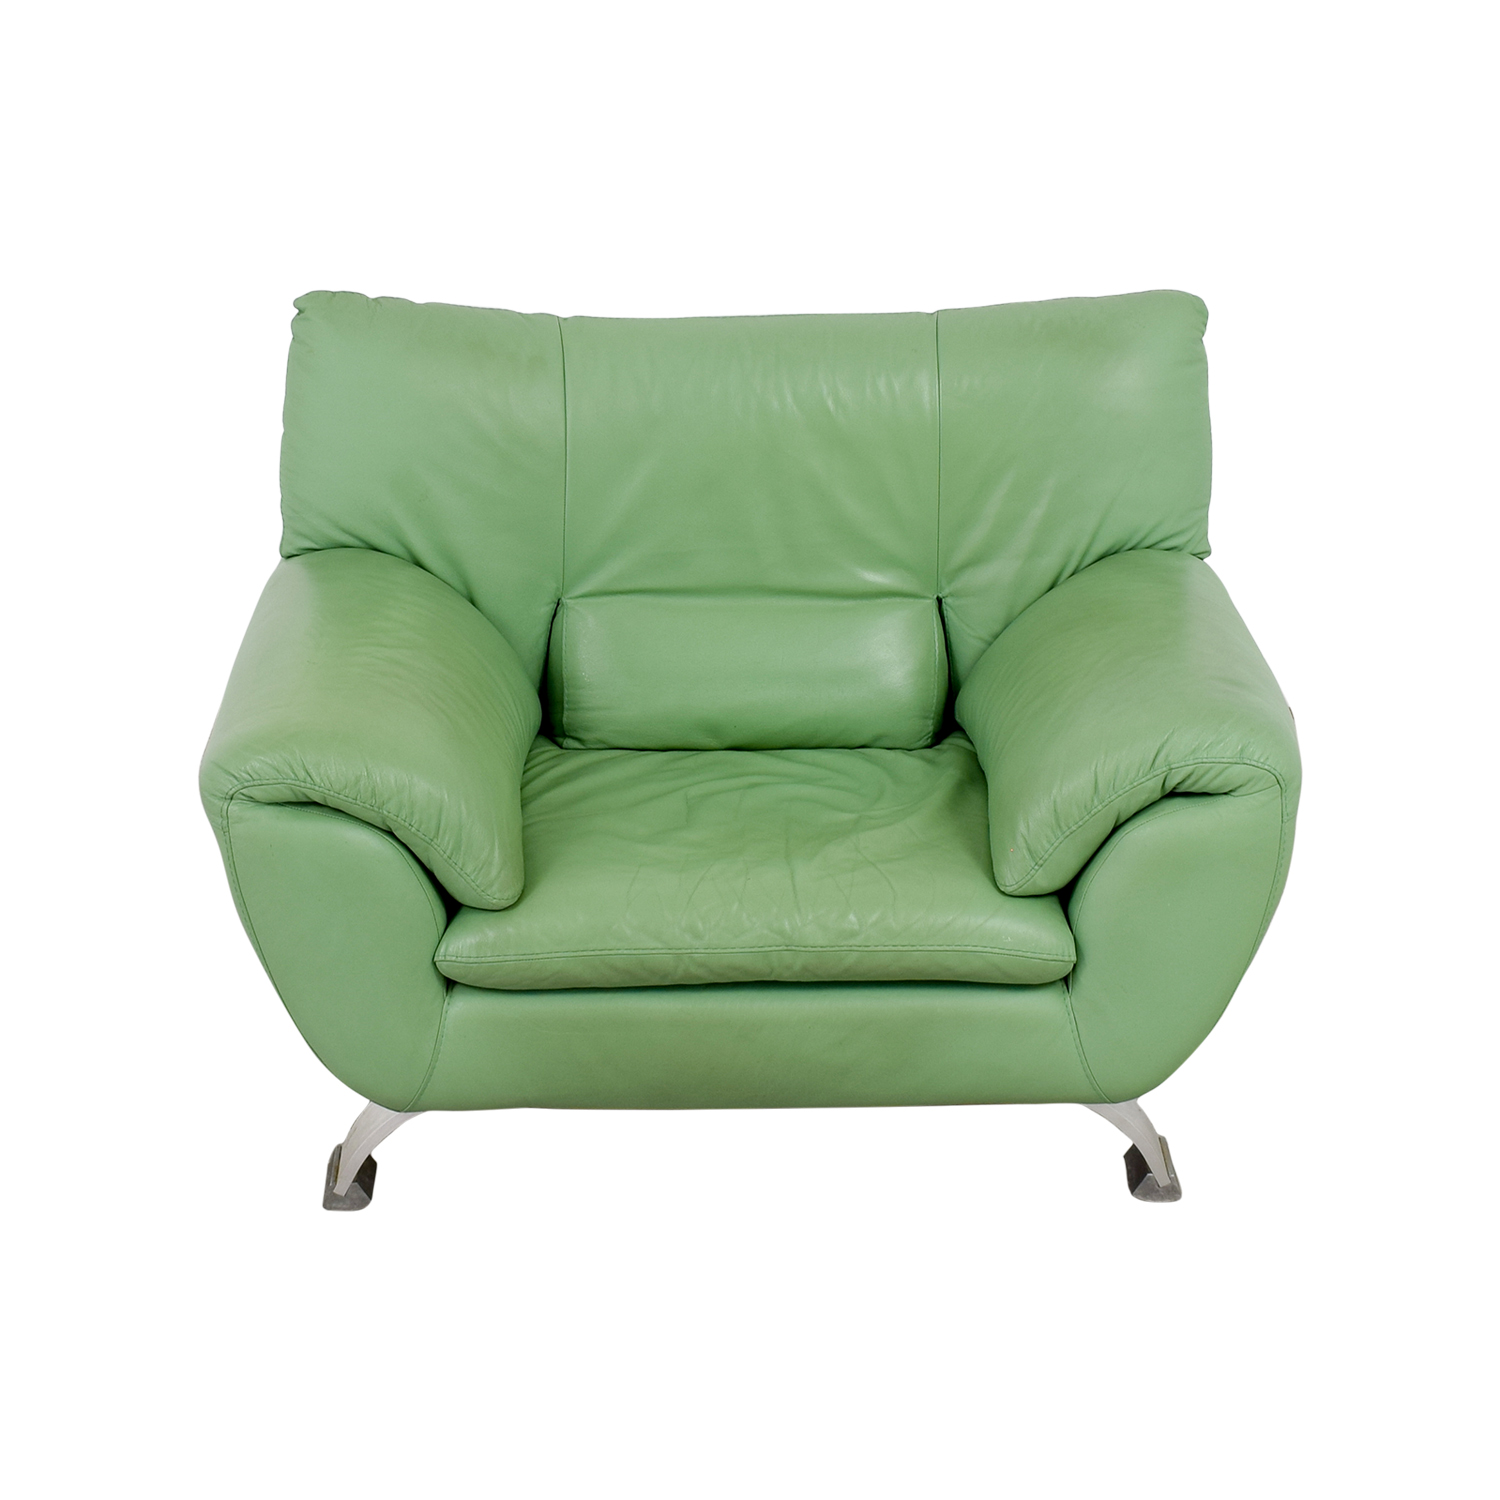 shop Nicoletti Green Accent Chair Nicoletti Accent Chairs